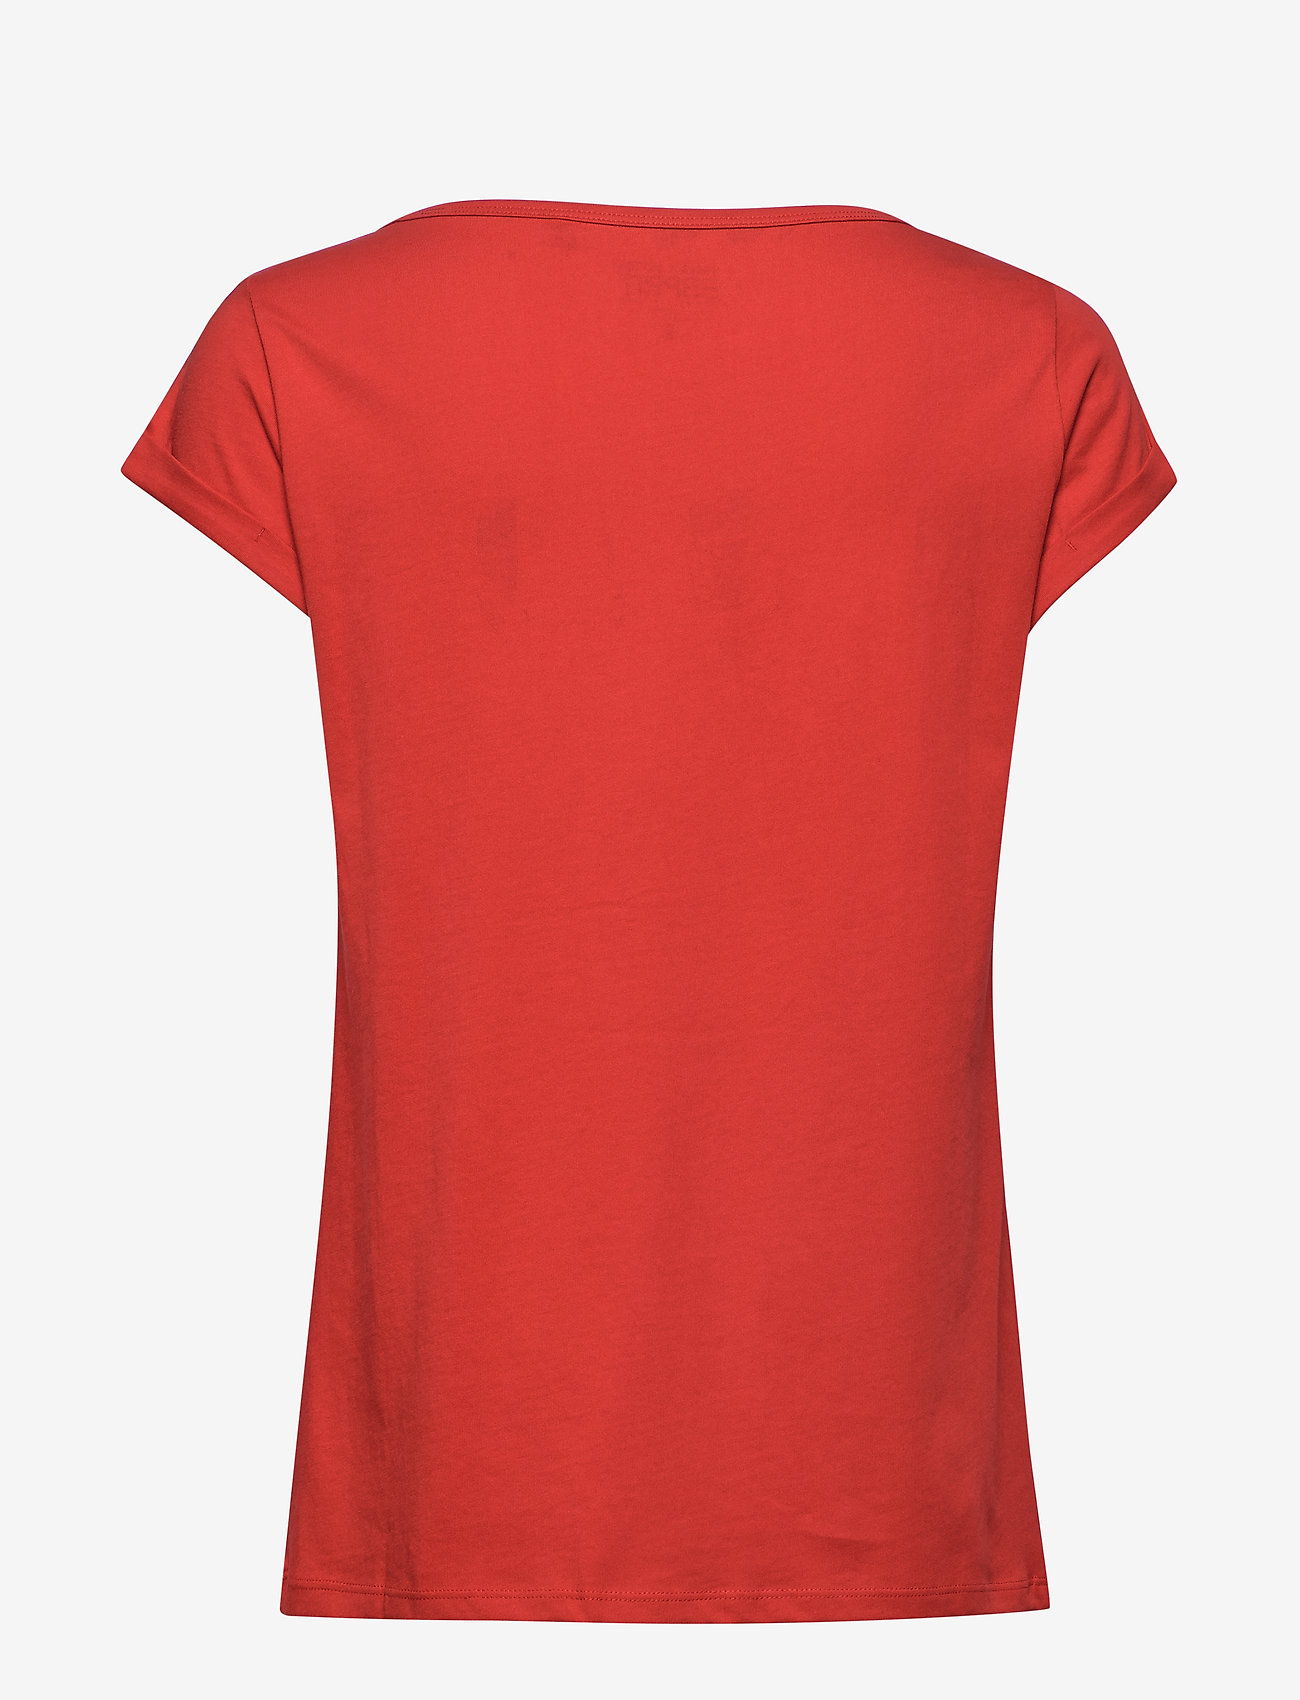 Esprit Casual - T-Shirts - t-shirts med tryk - dark red - 1